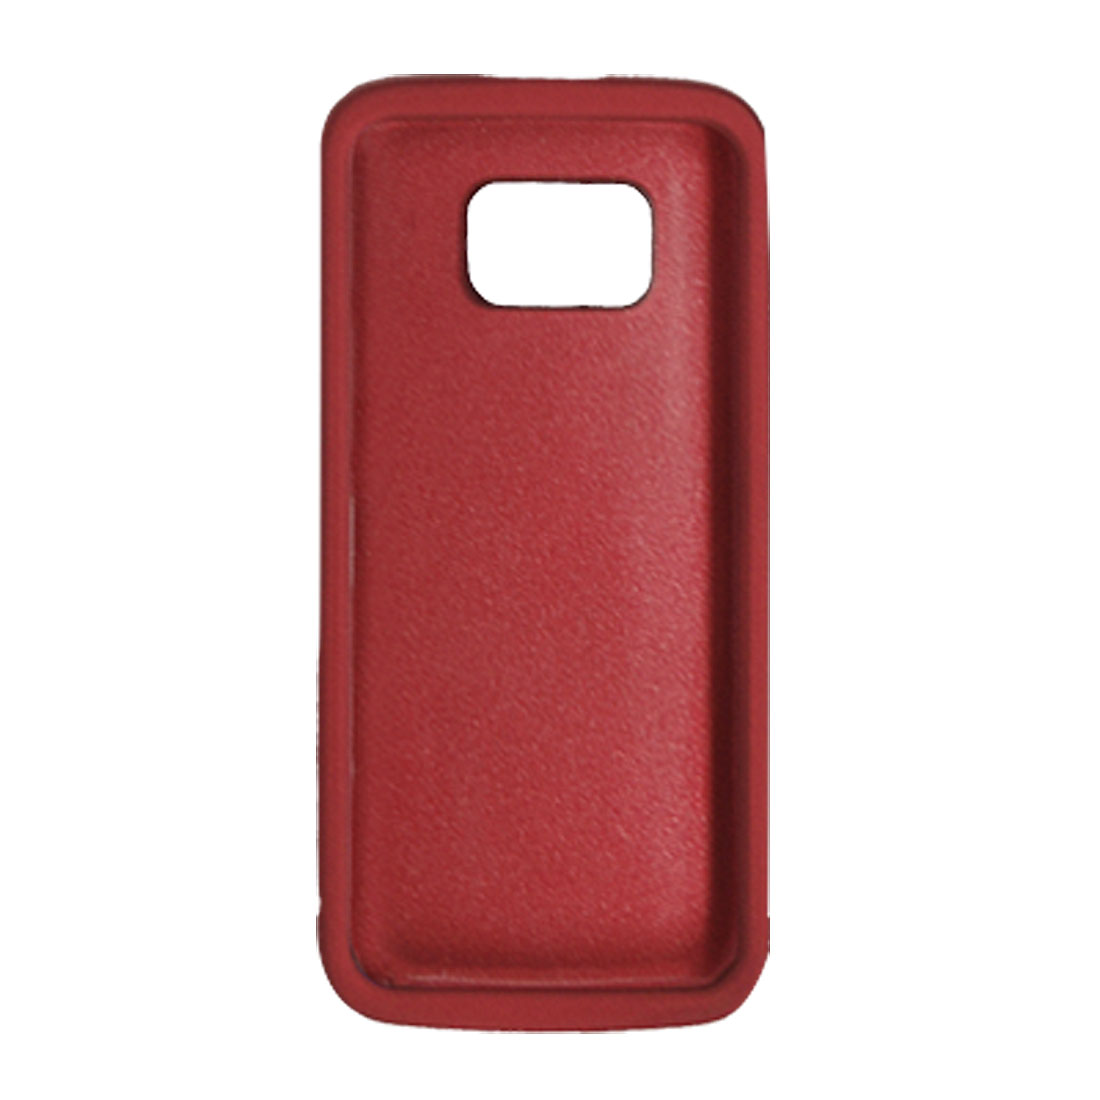 Rubberized Hard Plastic Case Cover Red for Nokia 5530